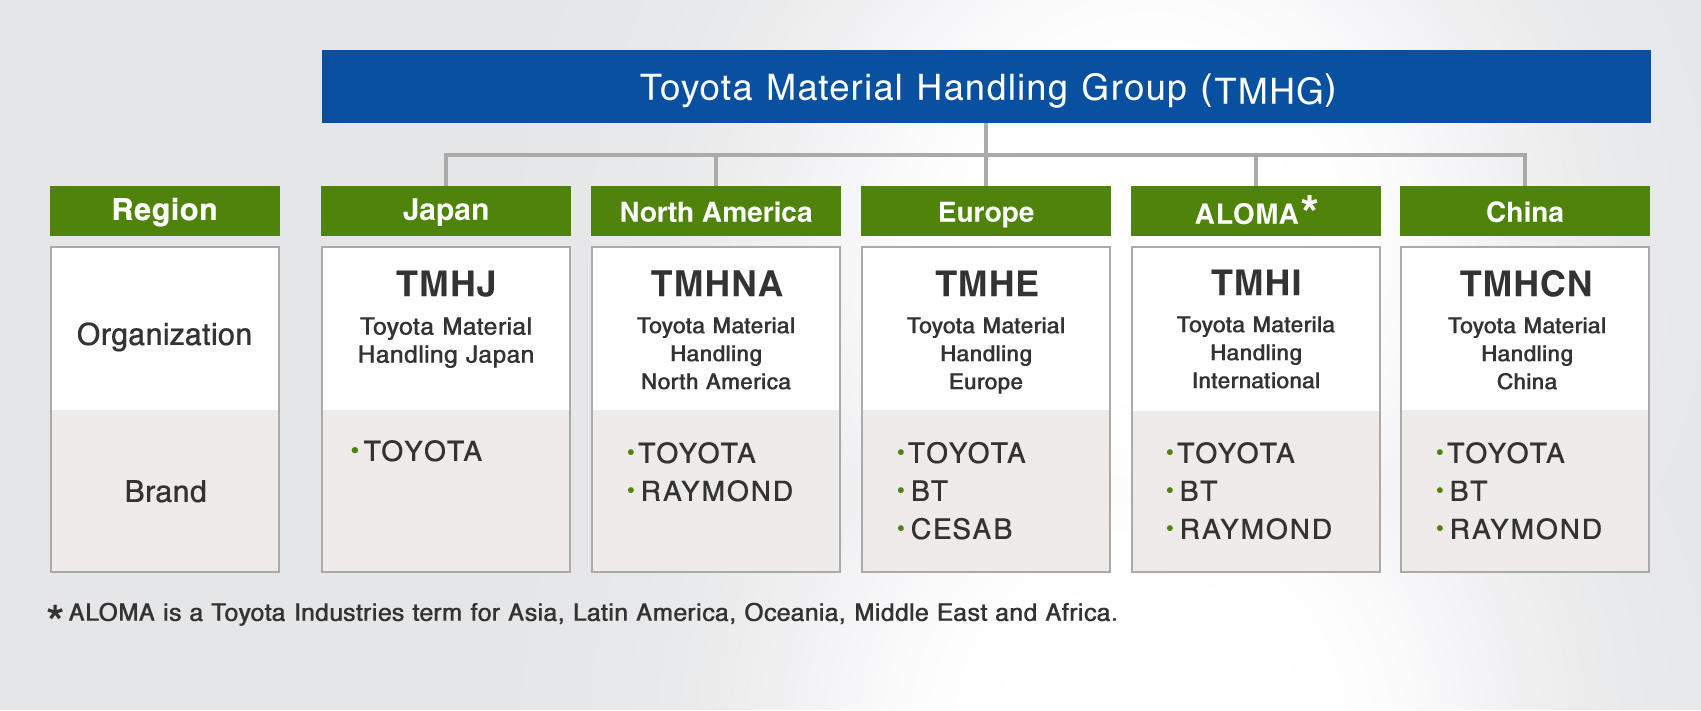 Global Business Development Led By Toyota Material Handling Group (TMHG)